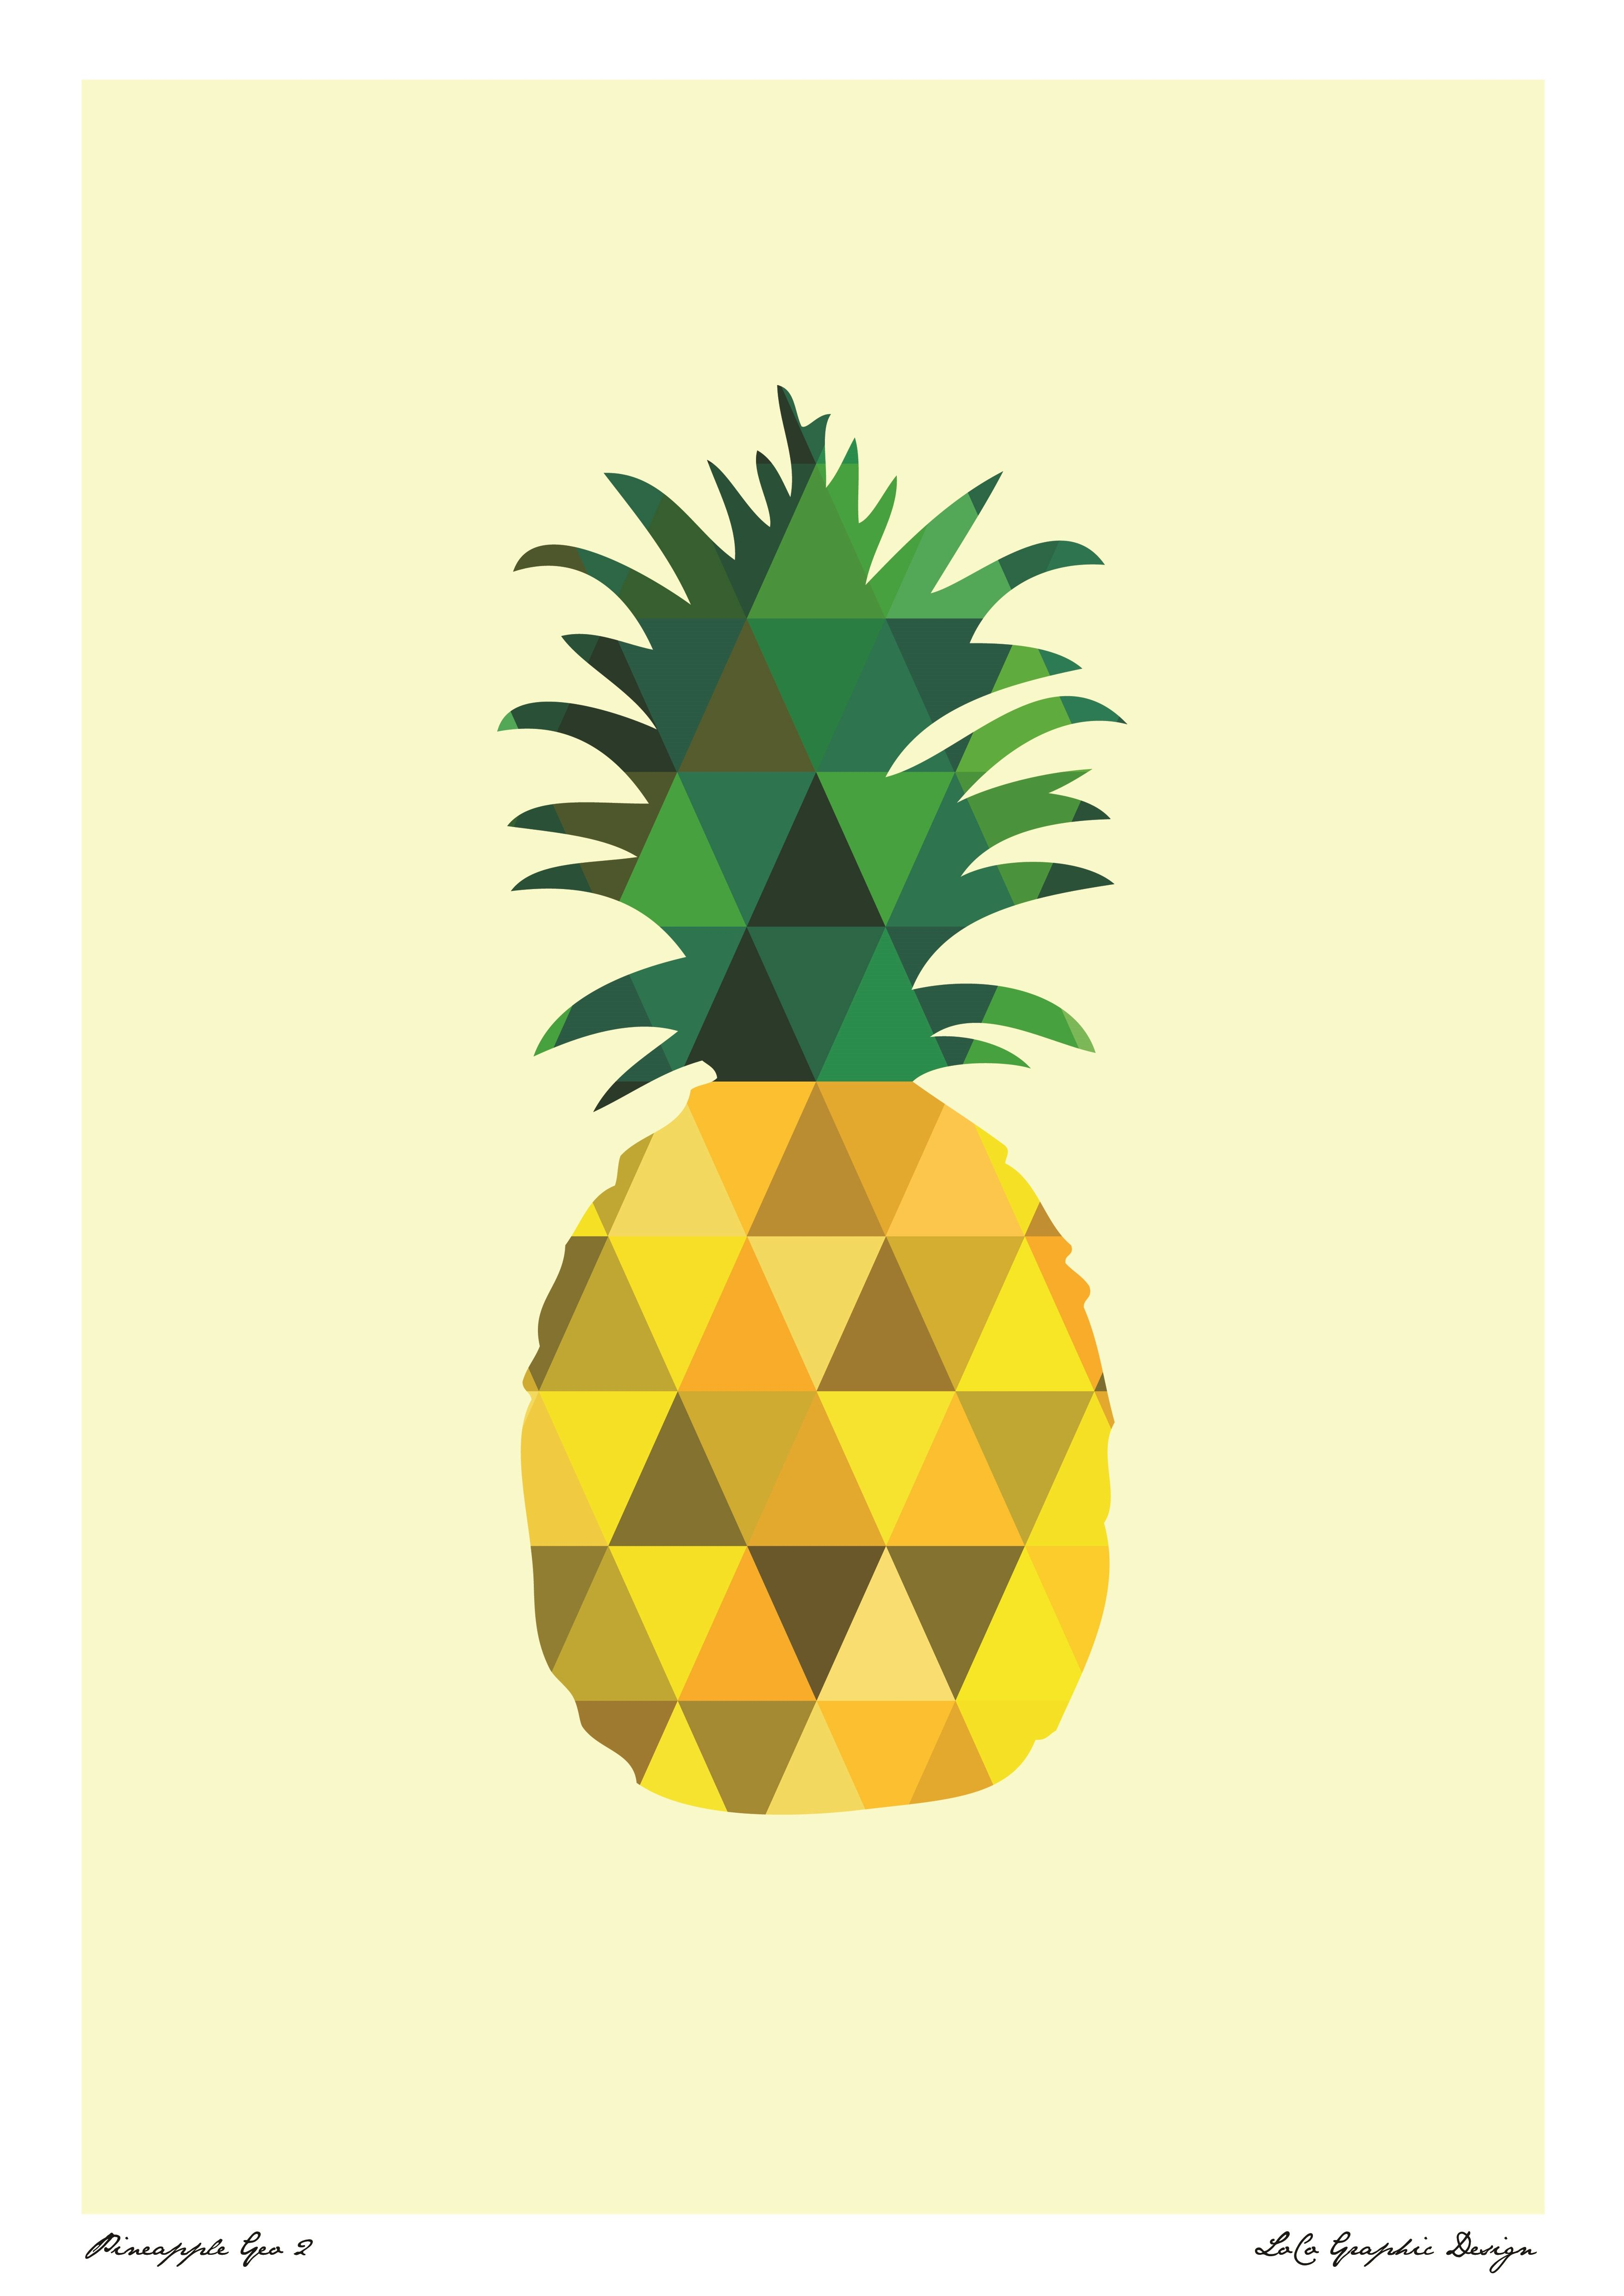 pineapple graphic design - Google Search | sunflowers ...